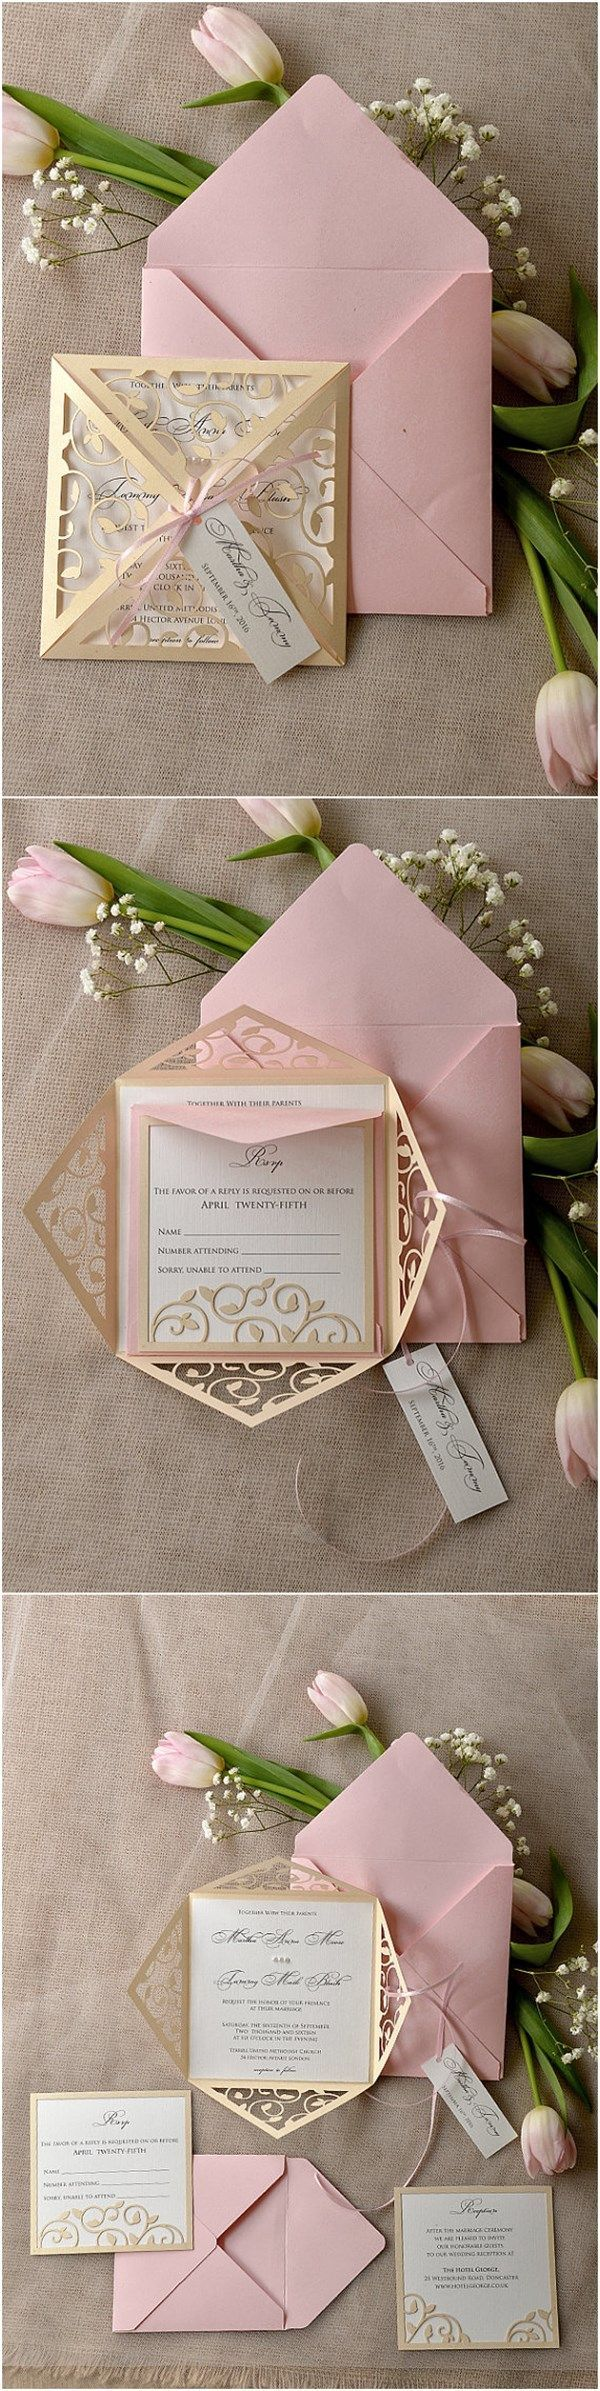 Vintage Patel Pink Blush Gold Laser Cut Quincenaera Invitation Idea | Quinceanera Invitation | Quinceanera Ideas DIY | Quinceanera Idea |